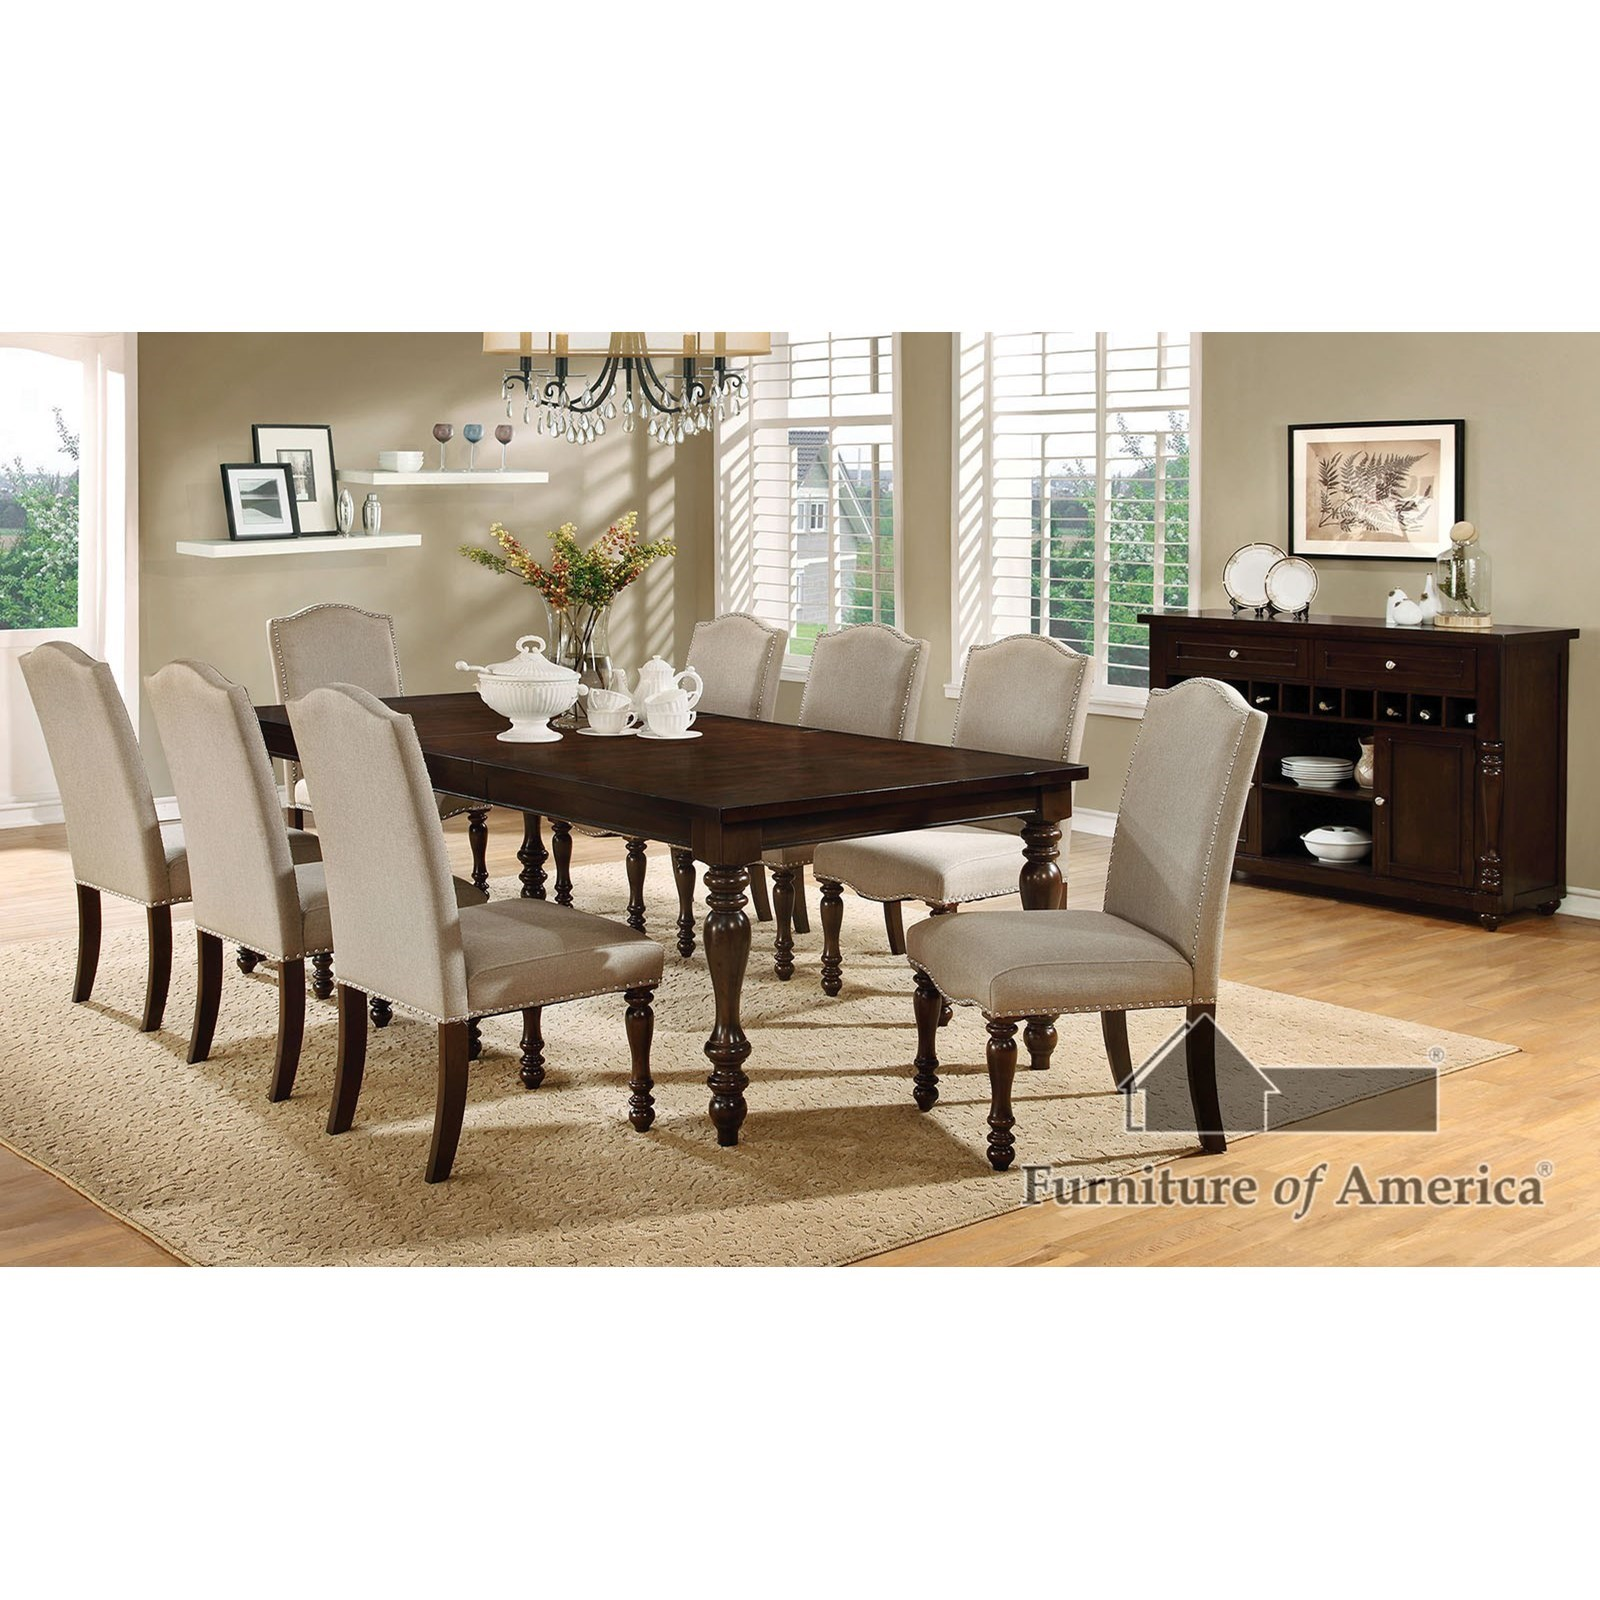 Holcroft Table + 4 Side Chairs + Bench at Household Furniture